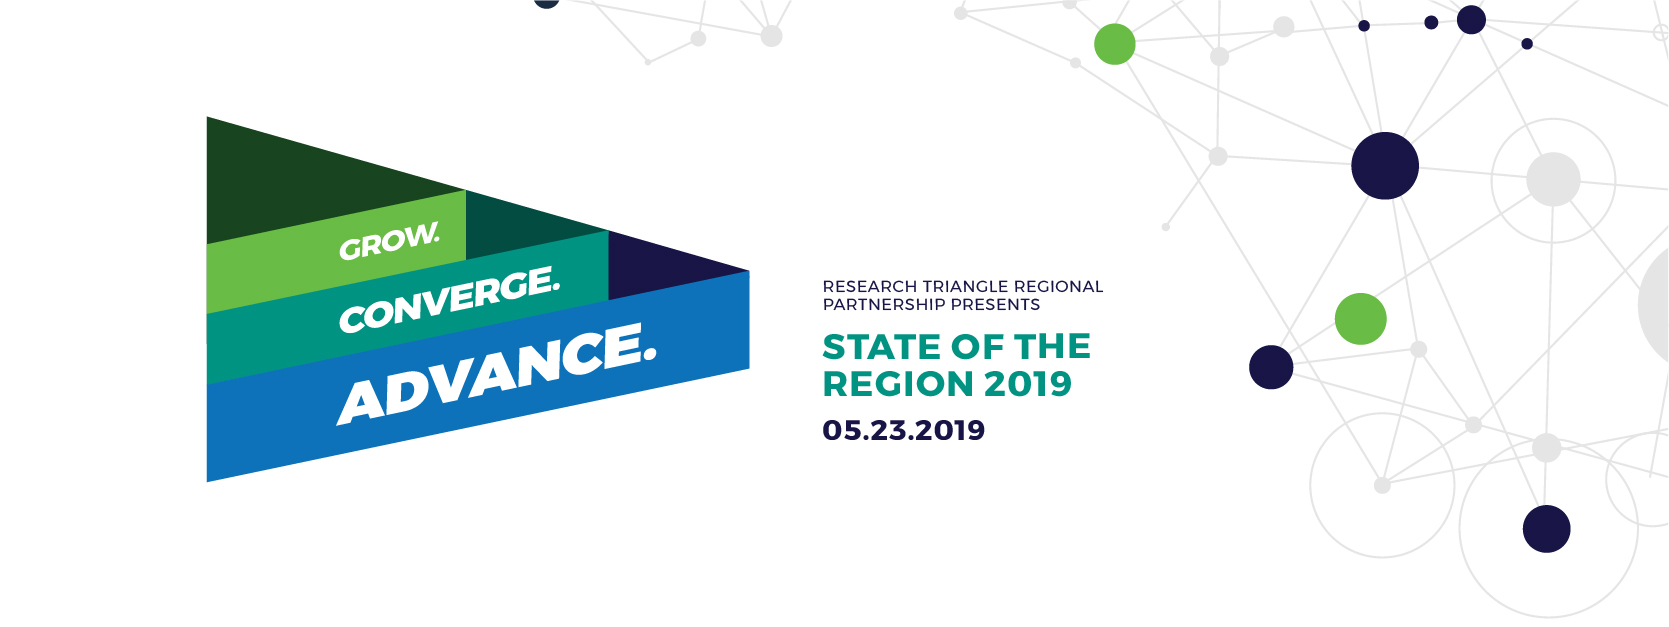 Research Triangle Regional Partnership presents State of the Region 2019. May 23rd, 2019. Grow, converge, advance.